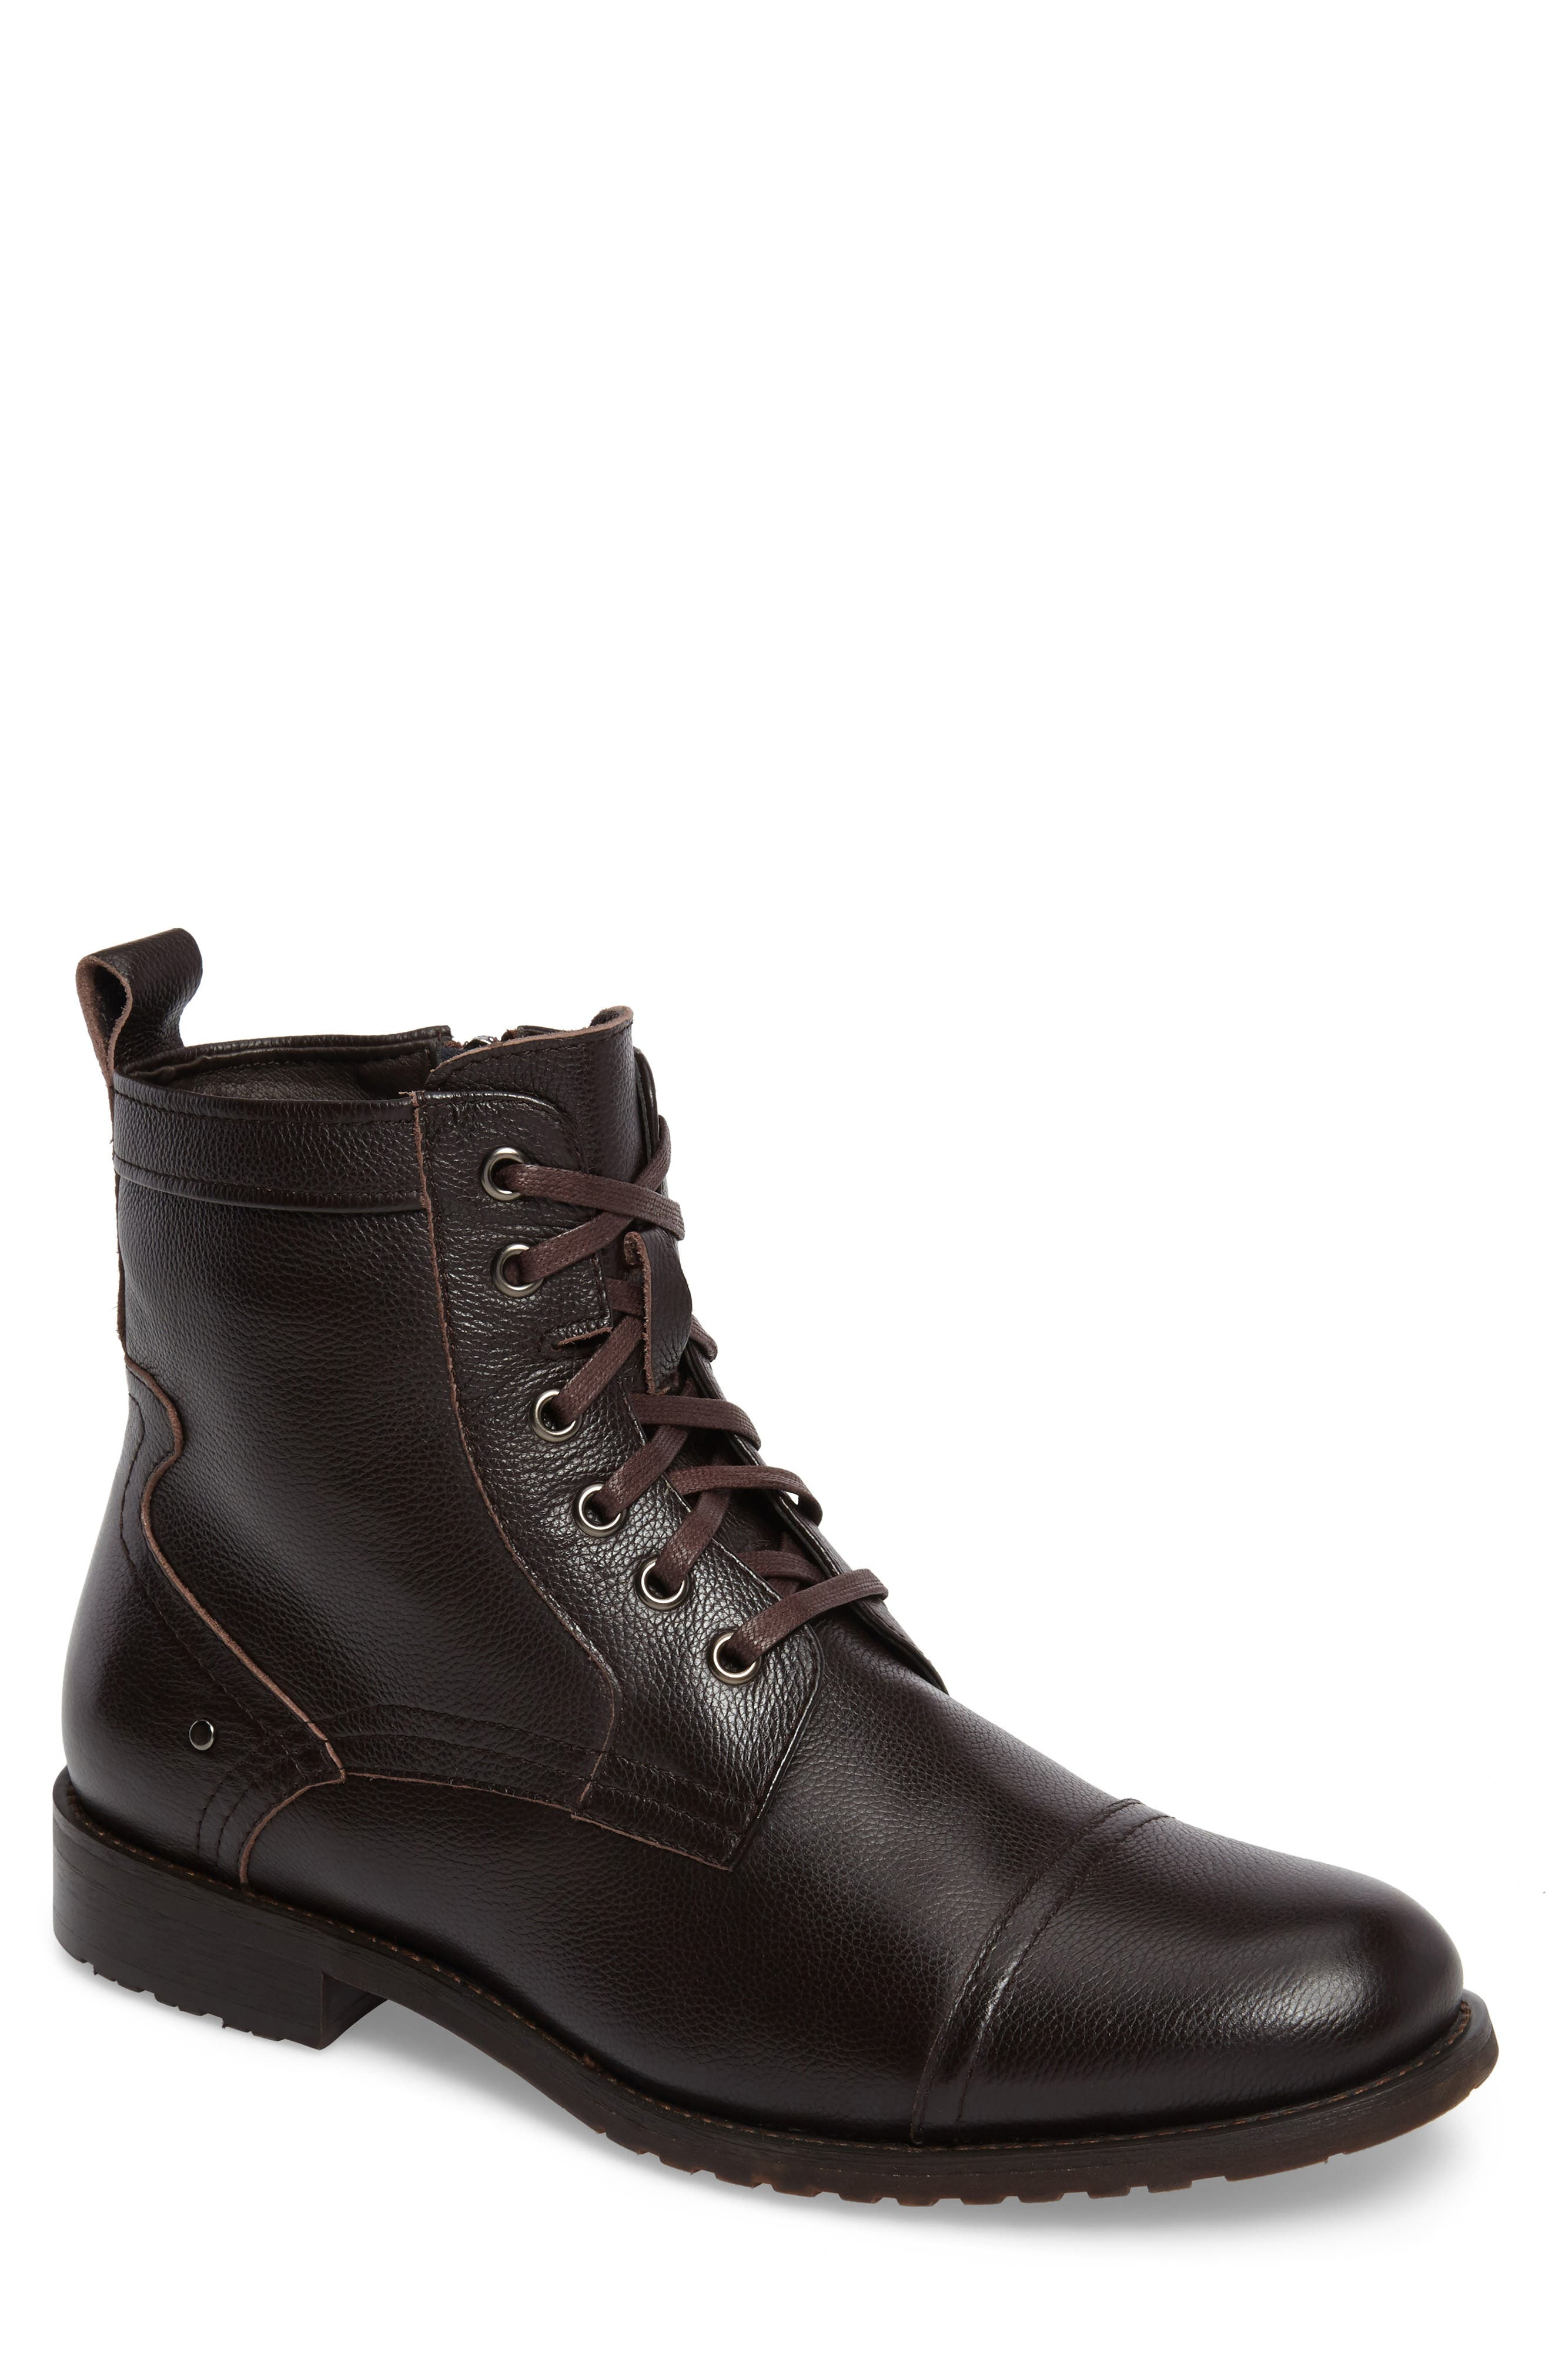 Cap Toe Boot,                             Main thumbnail 1, color,                             Brown Leather